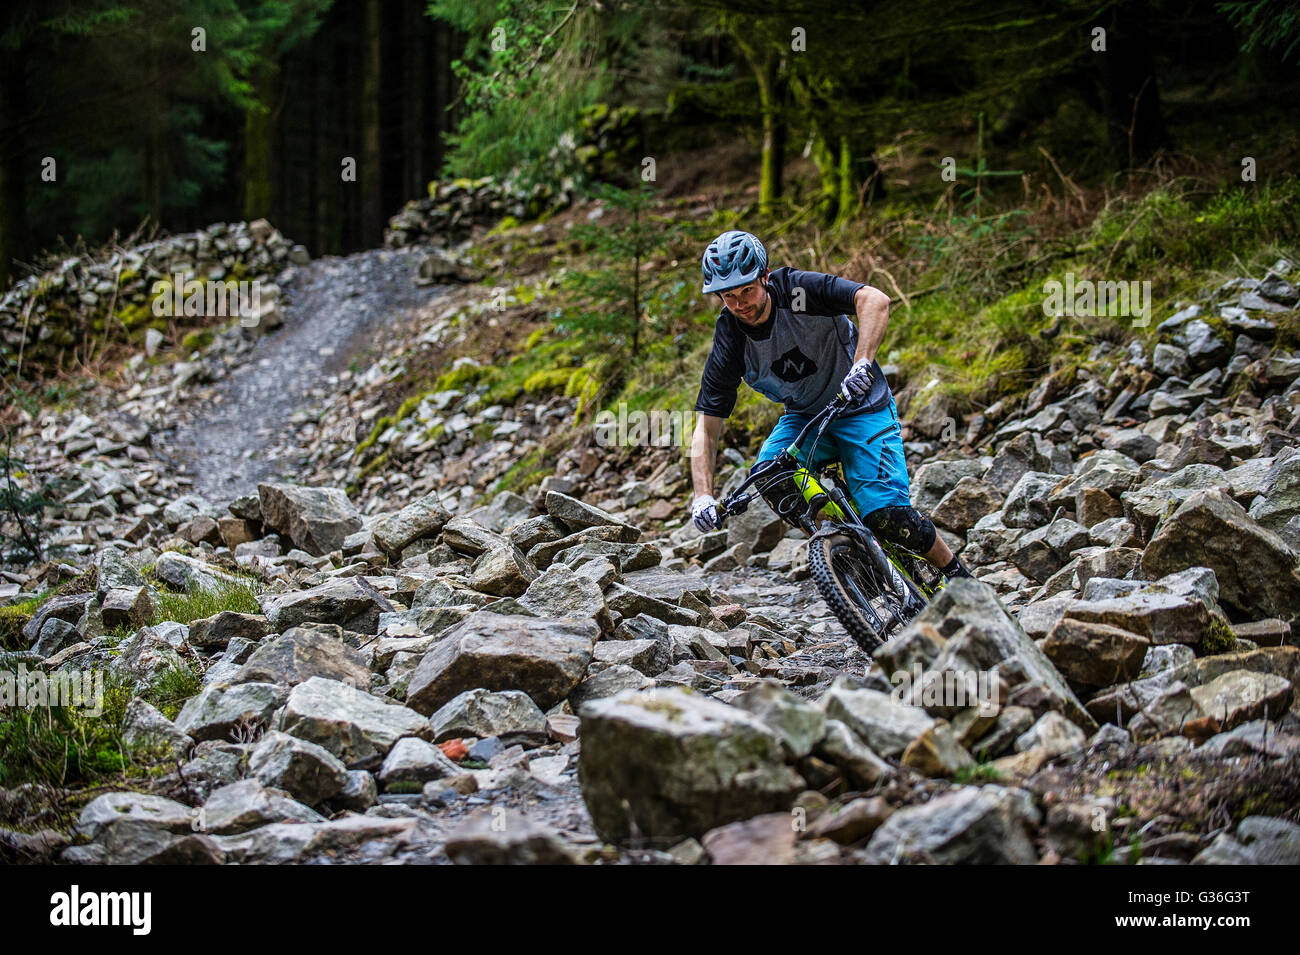 A mountain biker rides a trail at Bike Park Wales near Merthyr Tydfil in South Wales. - Stock Image